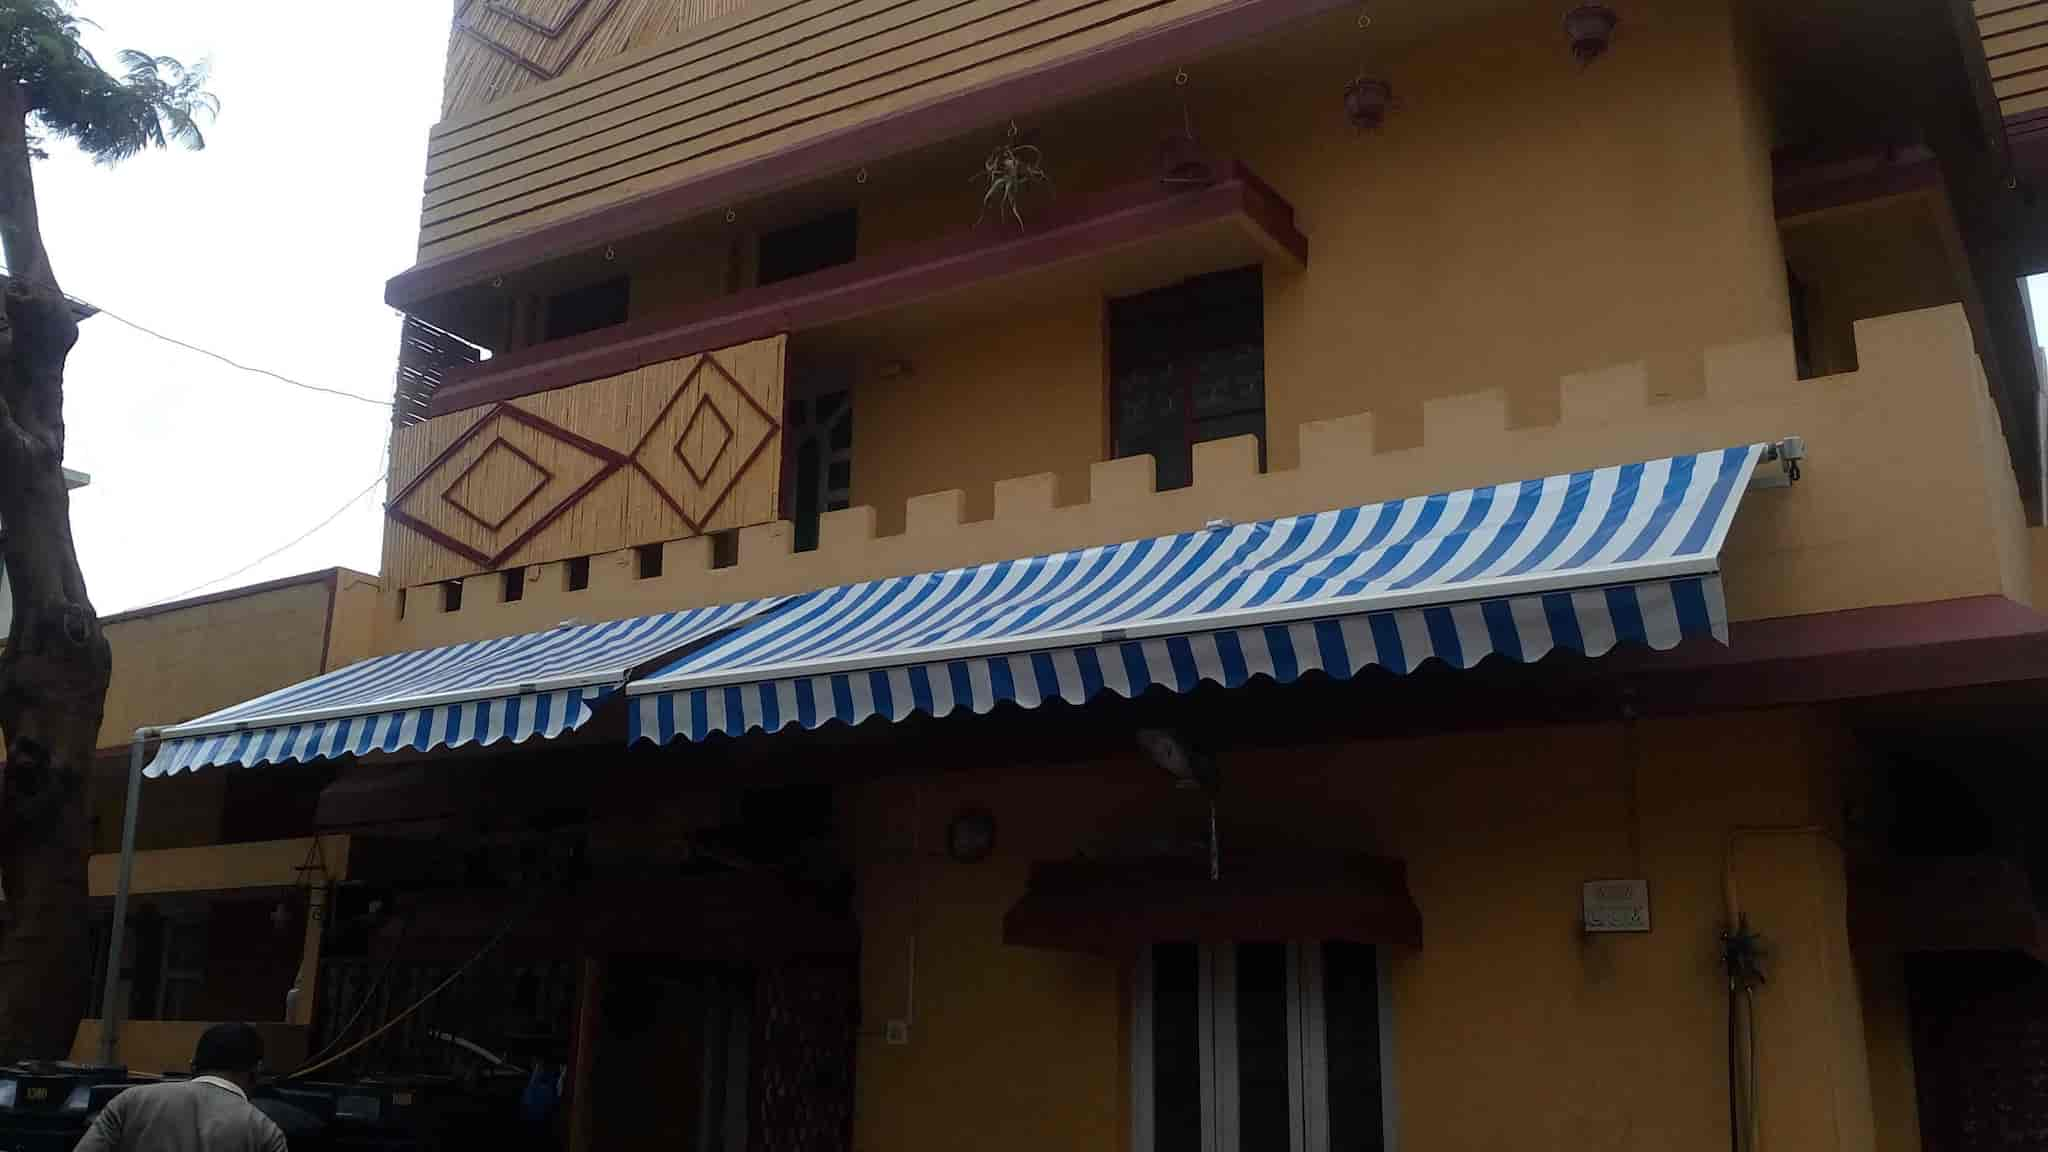 and we awning makers awnings canopies manufacturers make unique of